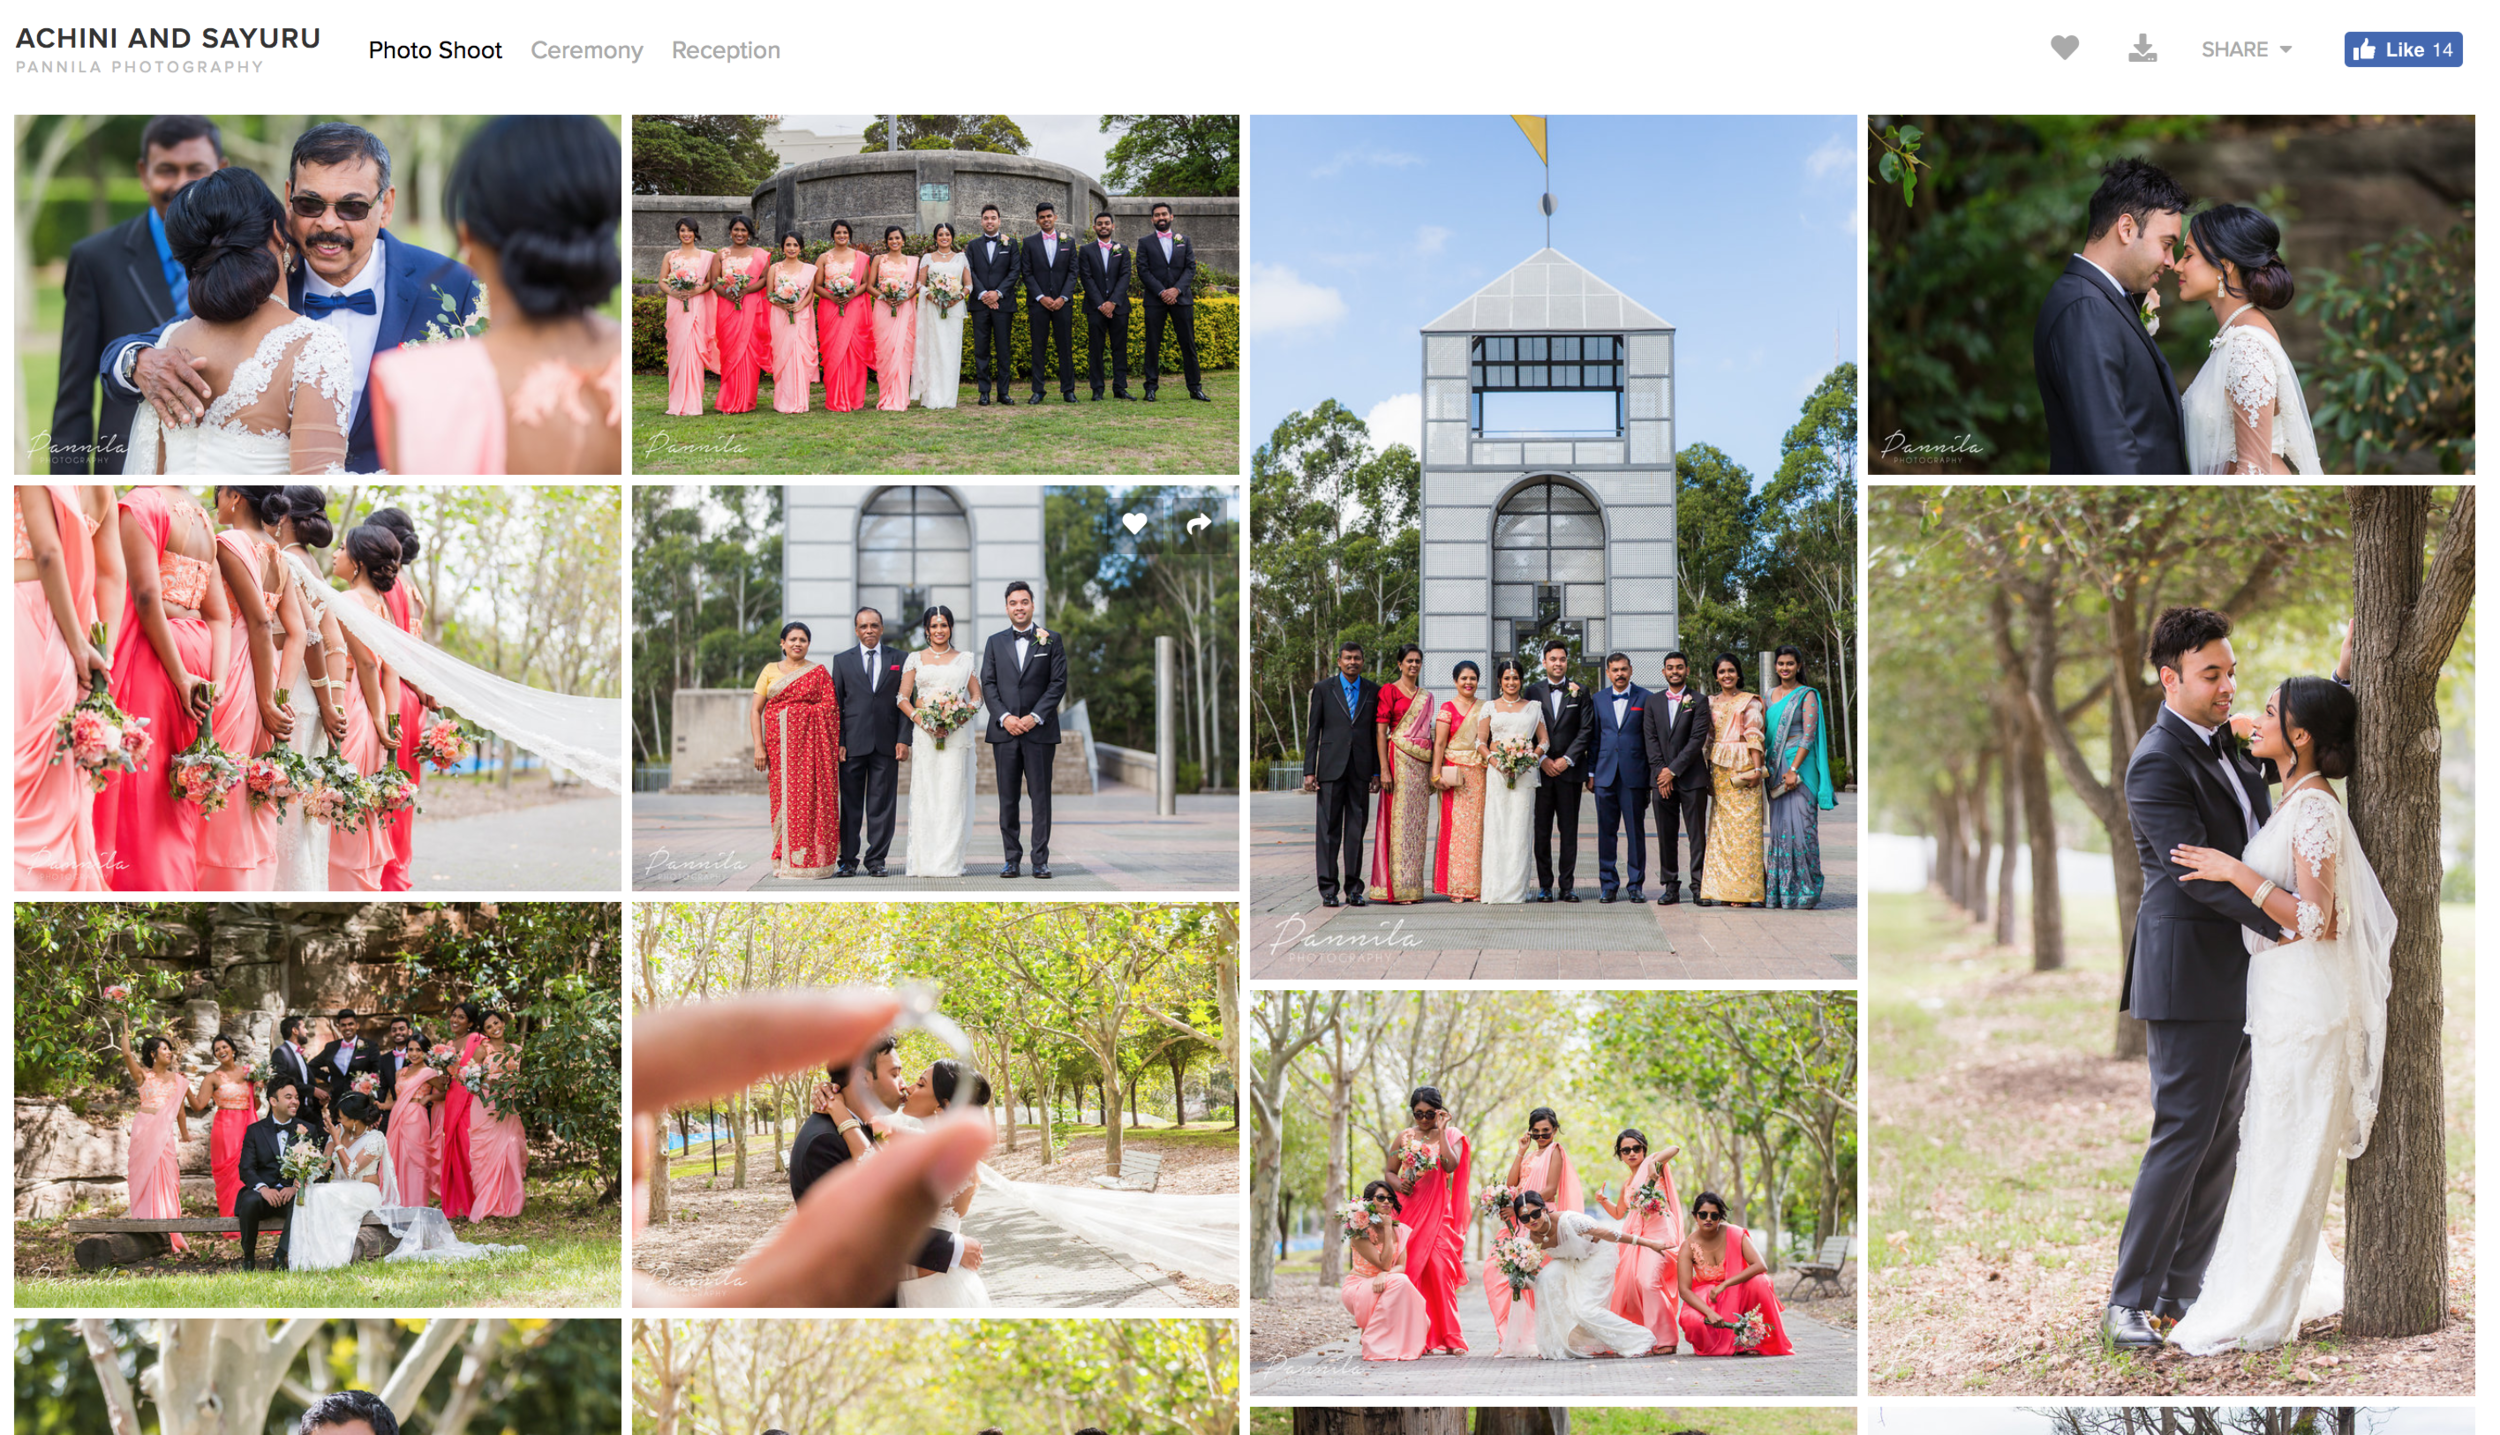 Online Web Gallery   Going overseas straight after your wedding and want to view your photos? We upload all of your wedding images online so you can view them from around the world.